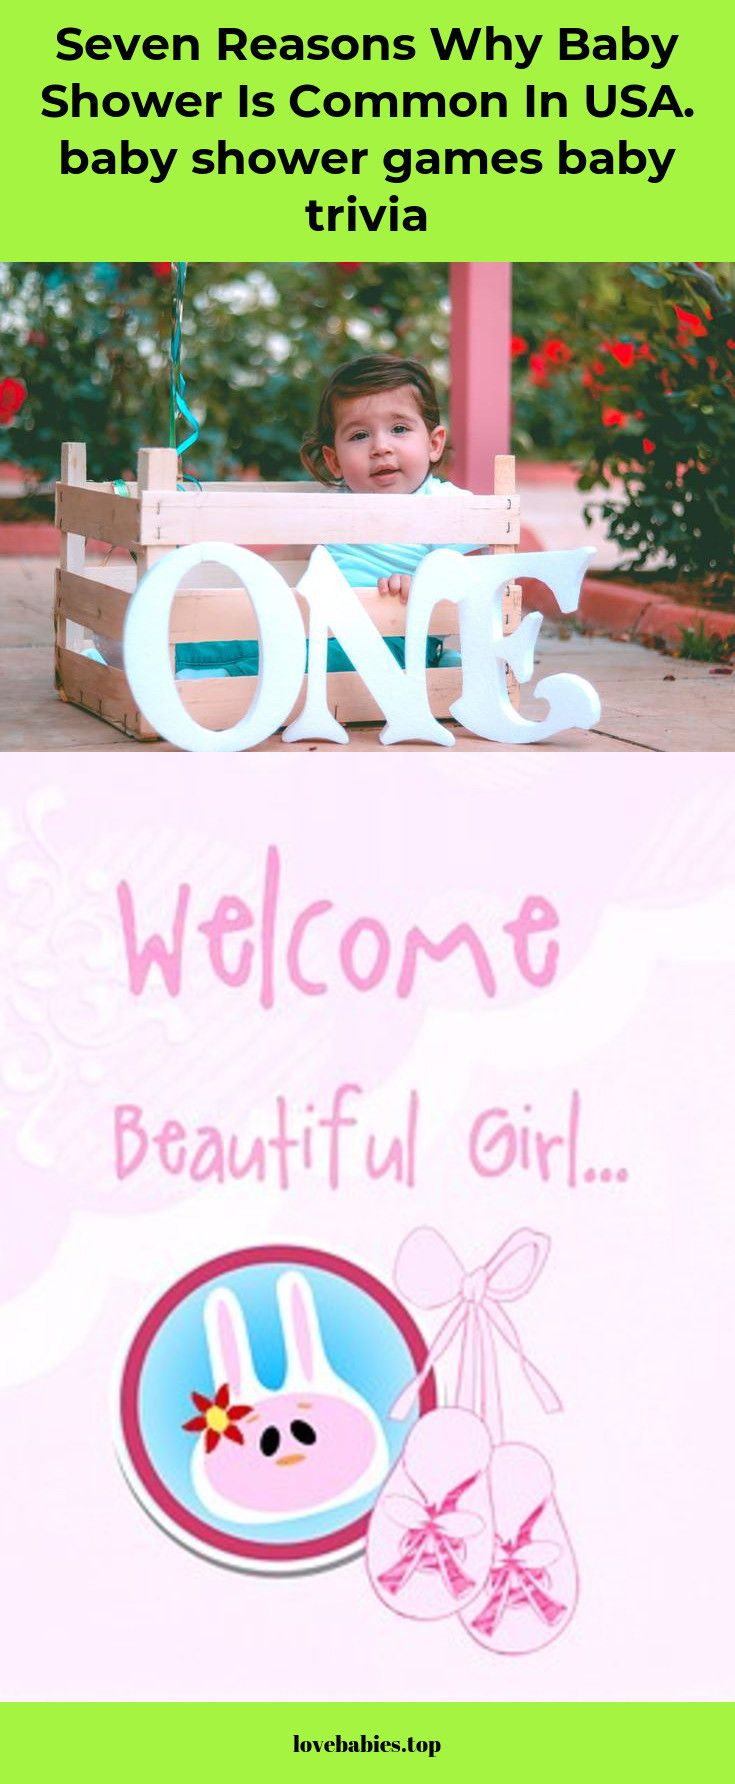 Look At The Webpage To Learn More Onseven Reasons Why Baby Shower Is